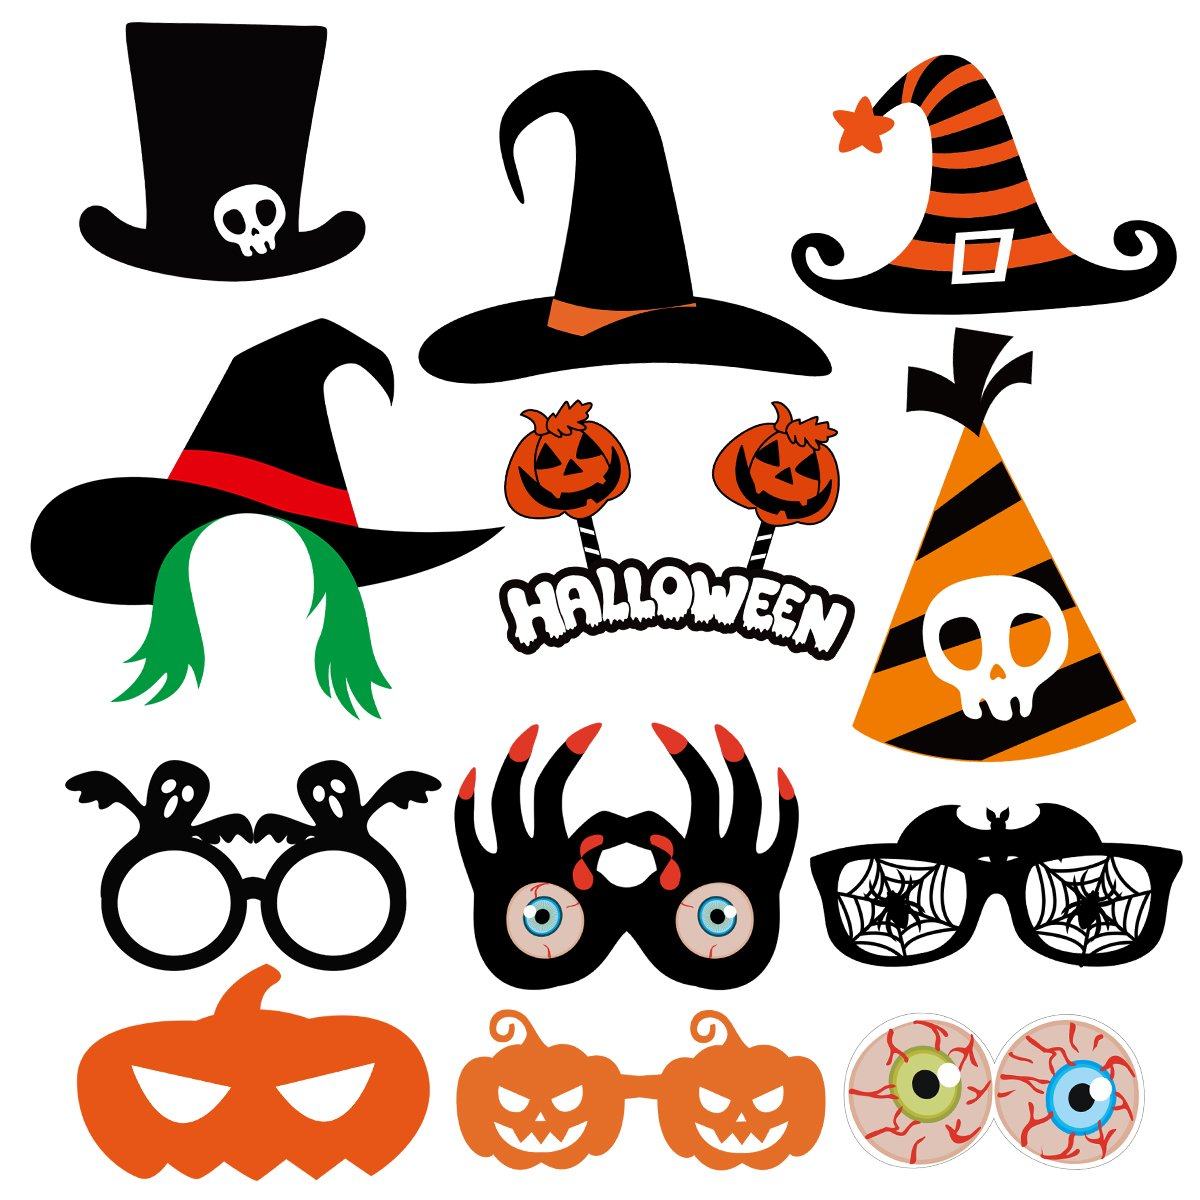 PRETYZOOM 47 Pieces Halloween Party Photo Booth Props Kit Fancy Party Decor Halloween SupplyPose Sign Kit for Party Decoration by PRETYZOOM (Image #4)